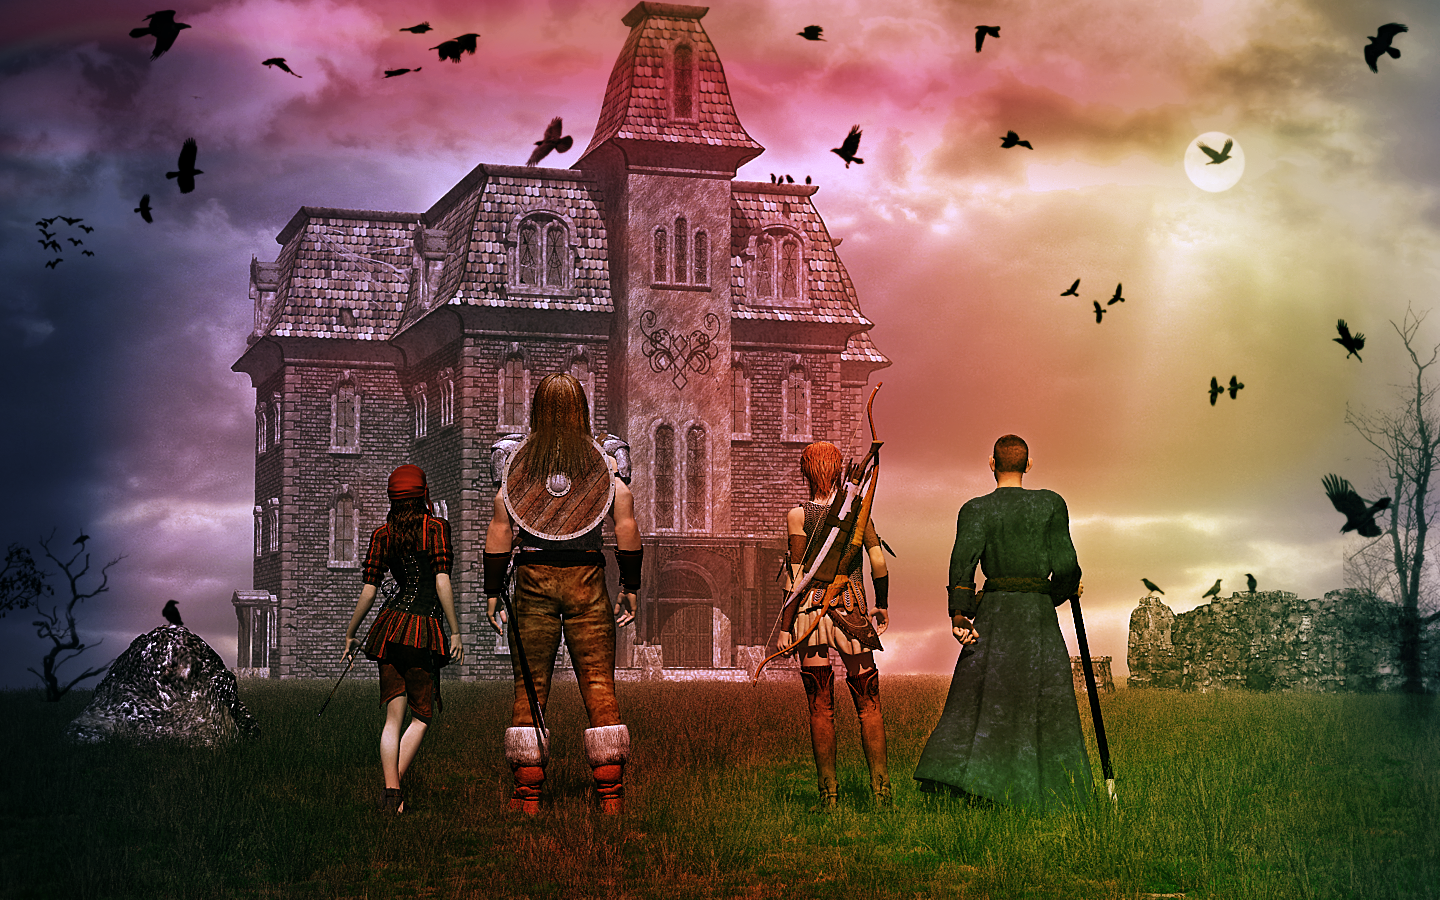 foxglove_manor__rise_of_the_runelords_2_by_jmb200960-d8p8krm.png